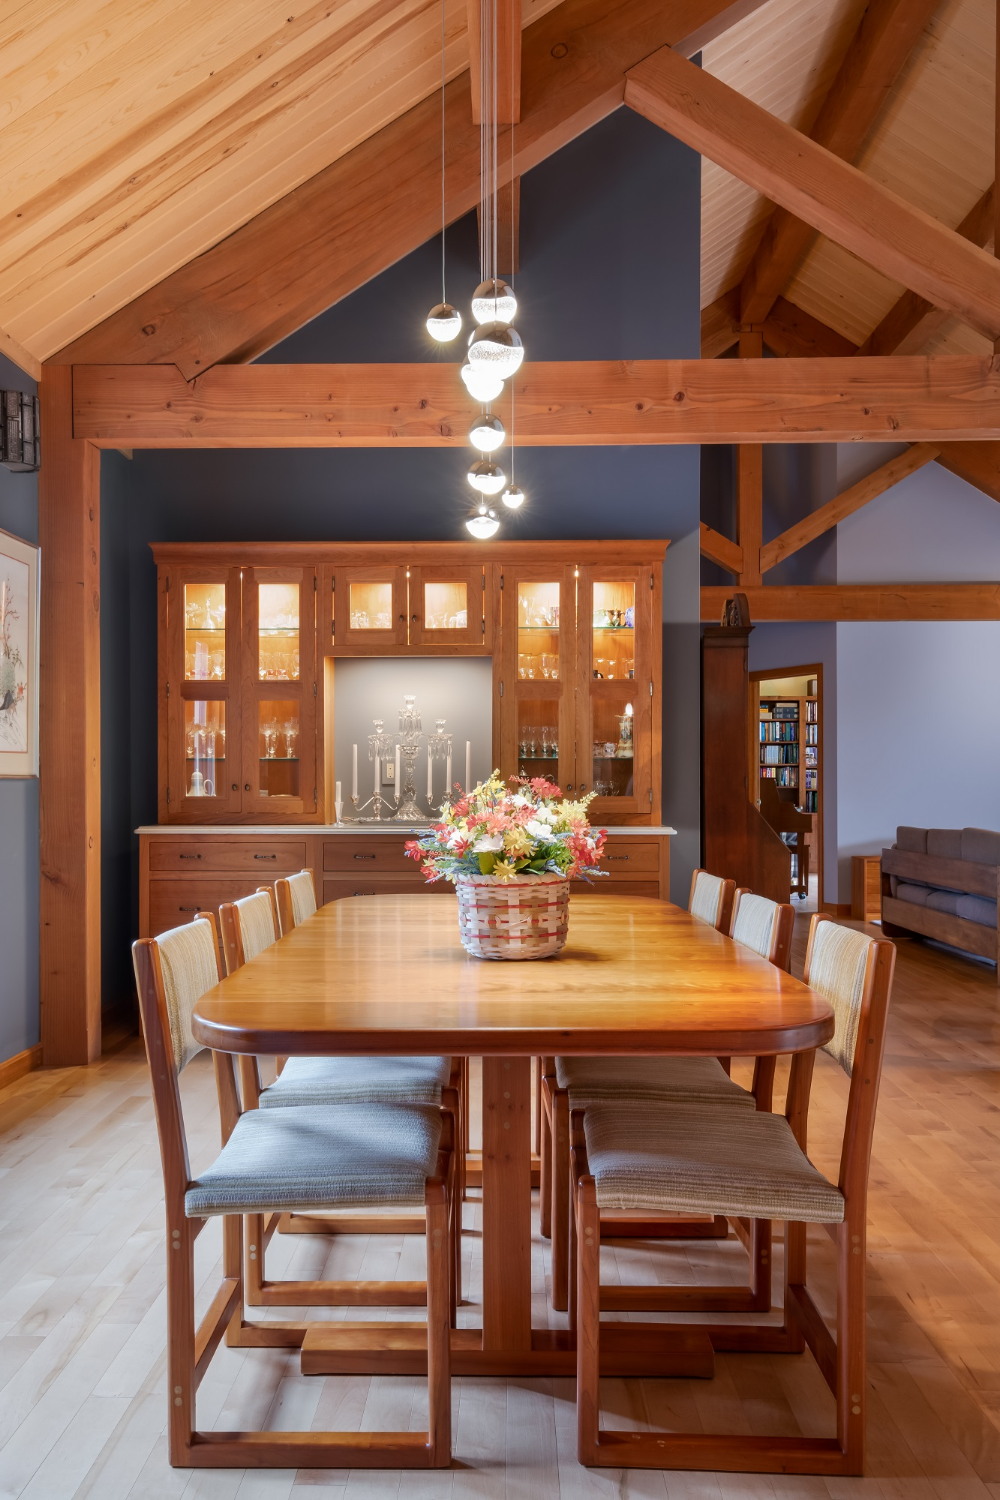 14+ Single story post and beam homes ideas